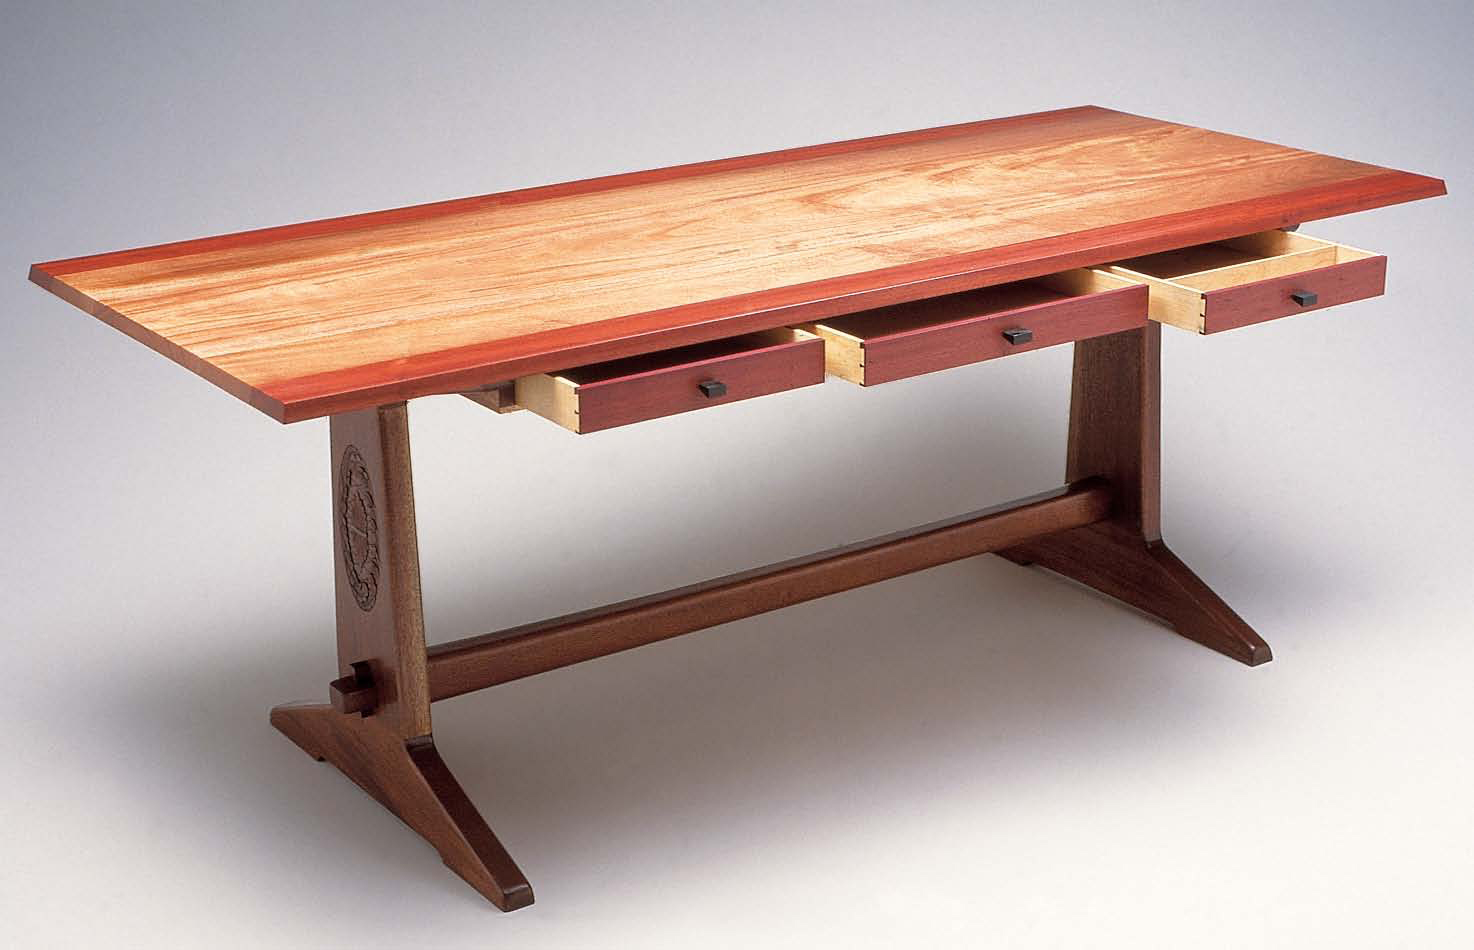 Superieur Wood Furniture 1. Design And Build A Diy Trestle Table XPFPWUA